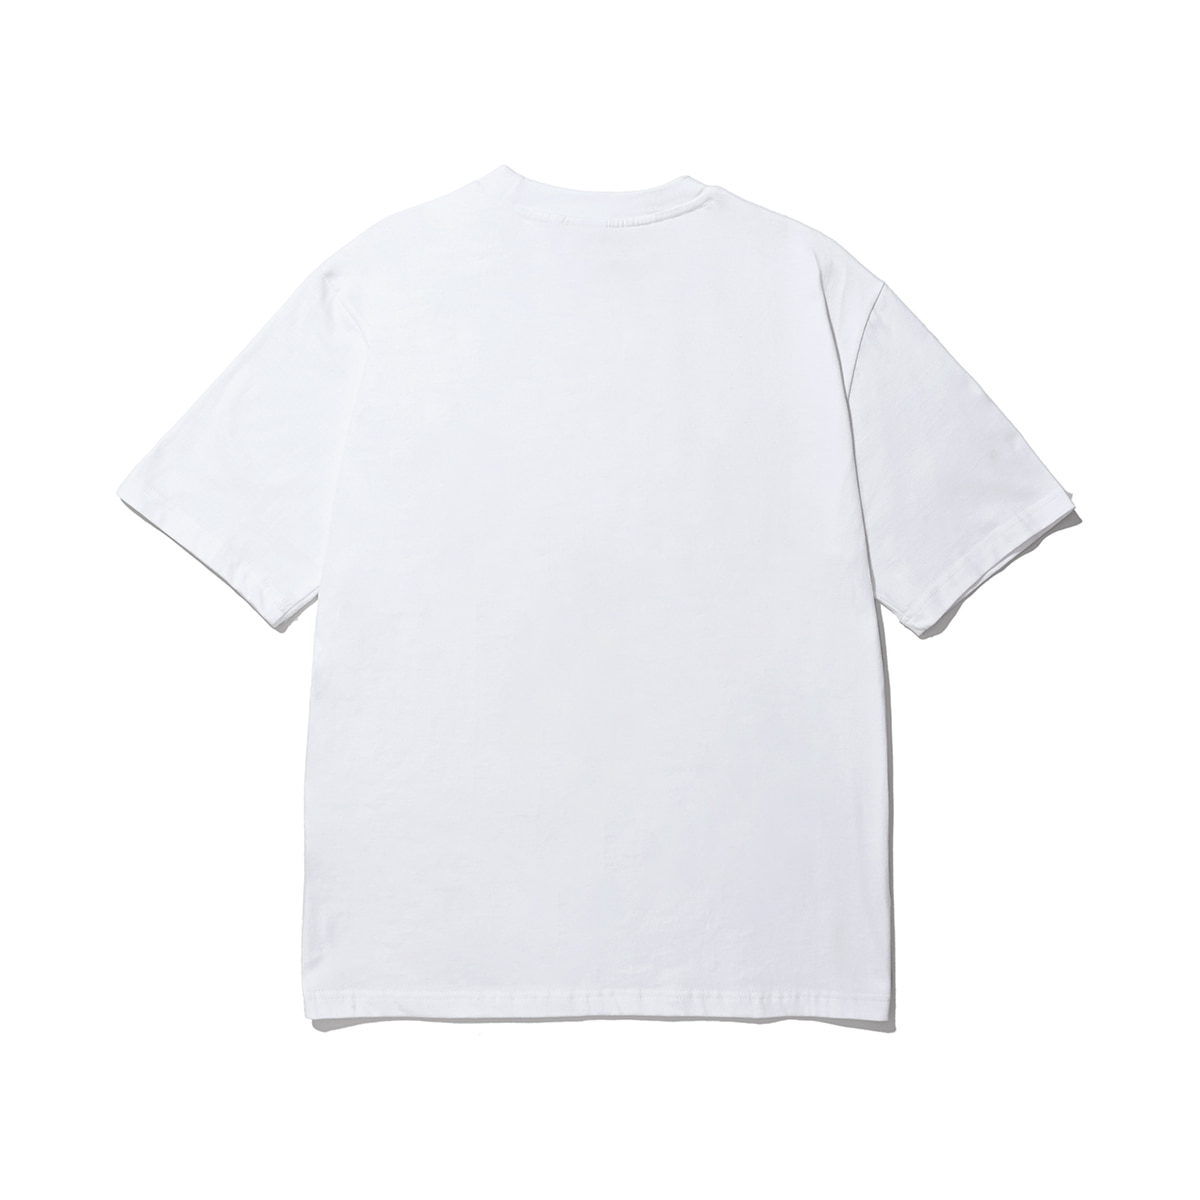 Astromobile T-shirt (white)